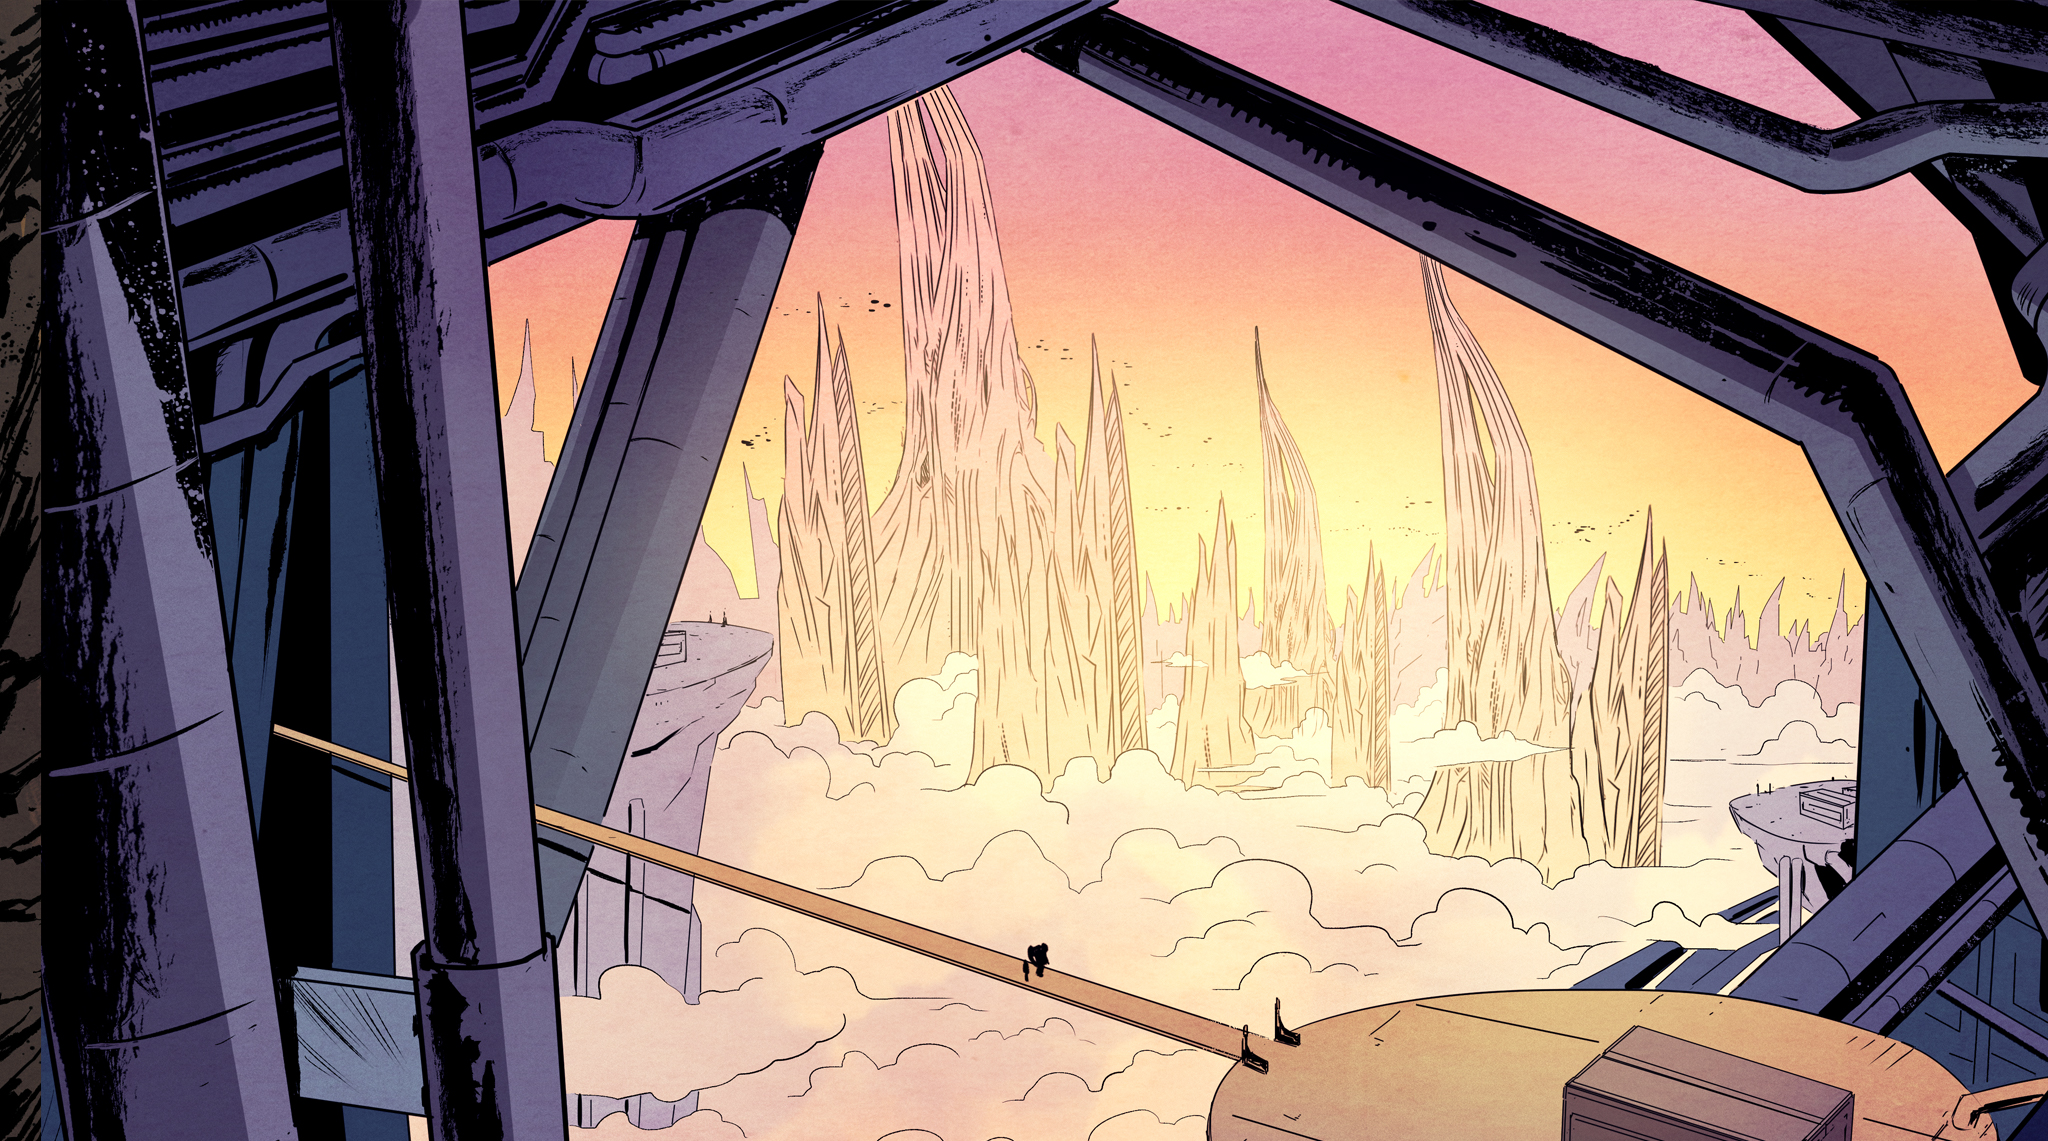 Artist Abel Garcia and Marvel's Irma Kniivila (Ms. Marvel, Deadpool) combine to create a stunning visual spectacle for Gareth R. Roberts' world.